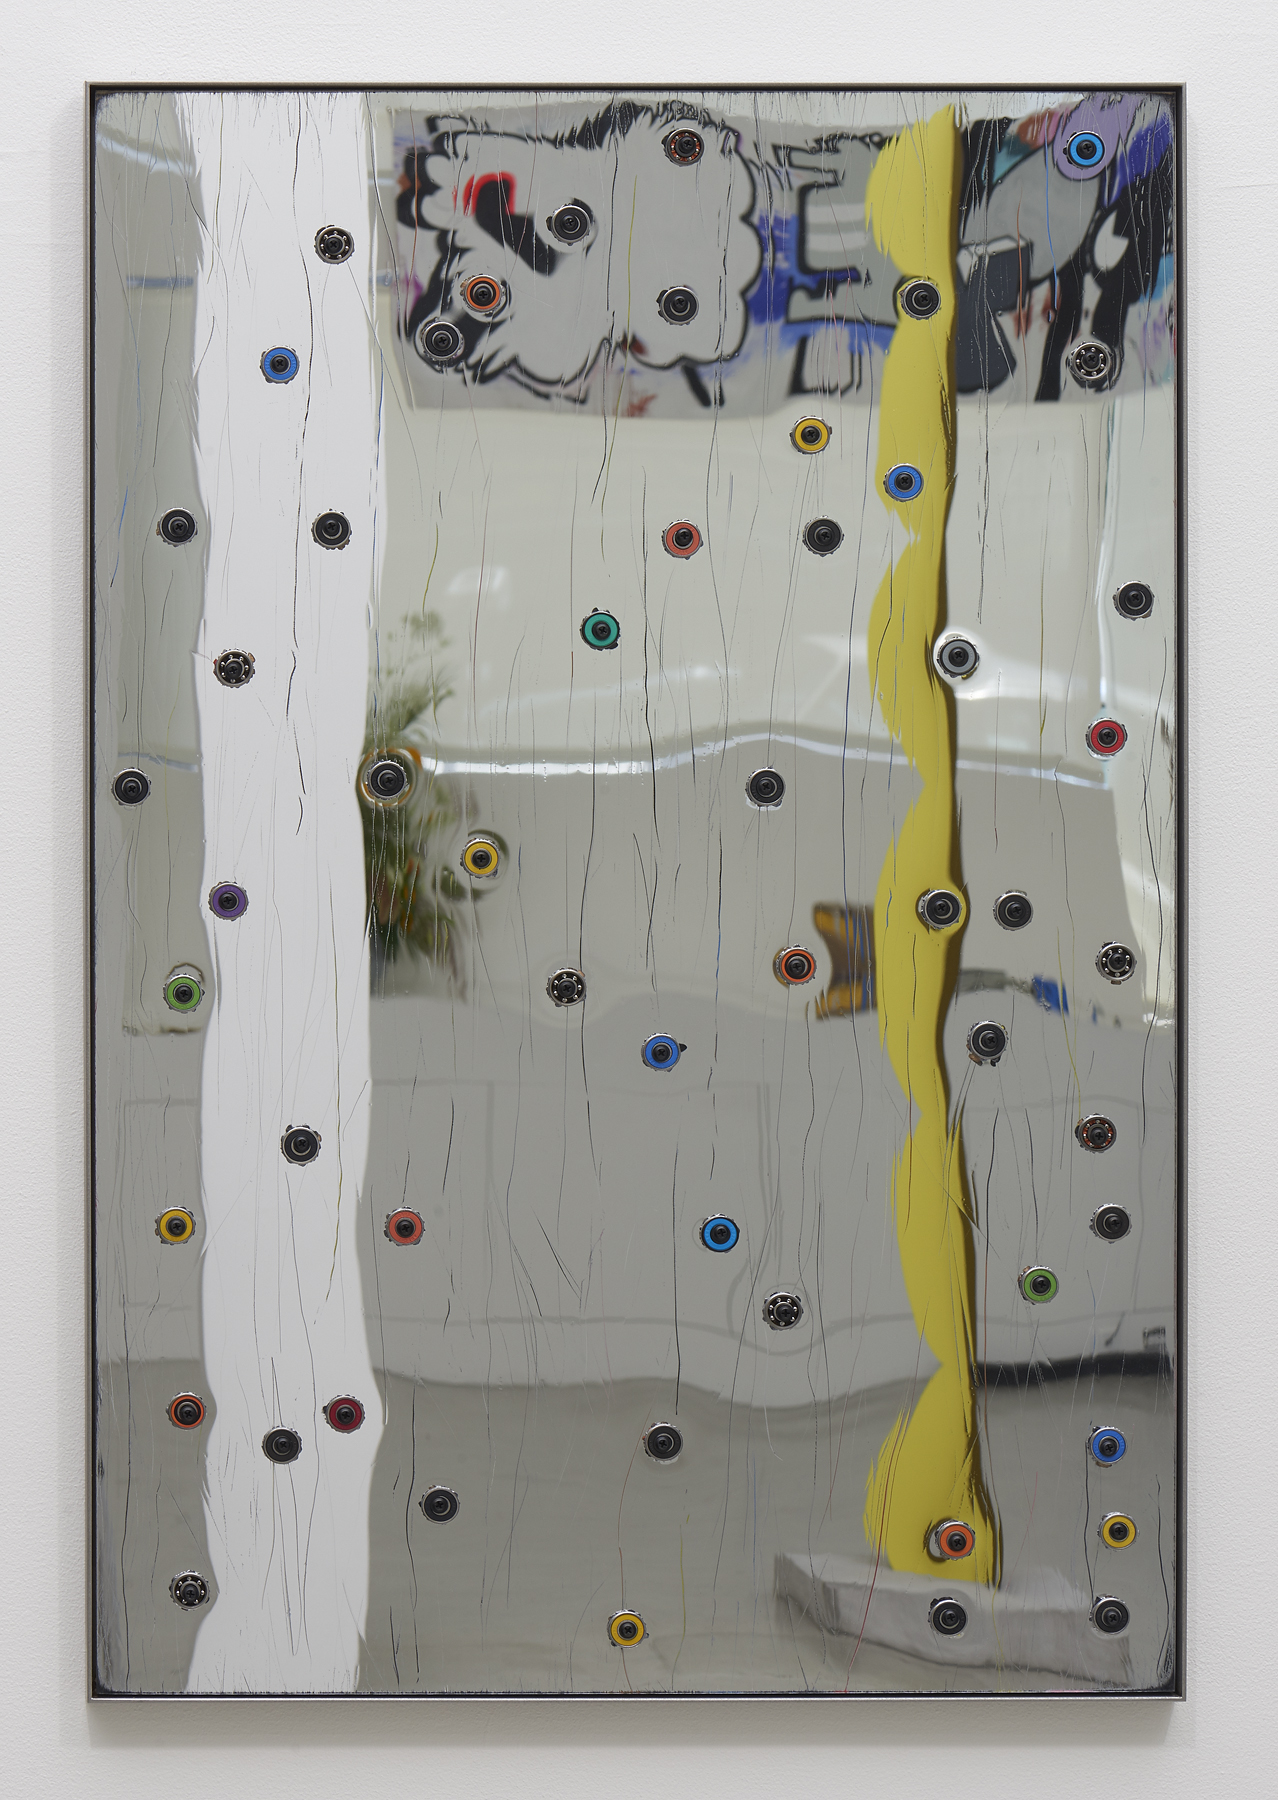 """Davina Semo,  """"USE THE MIRROR,"""" SHE TOLD ME, """"THE MIRROR IS A TOOL """", 2018, Acrylic mirror, oriented strand board, assorted ball bearings, hardware, stainless steel, 38 x 25 inches"""